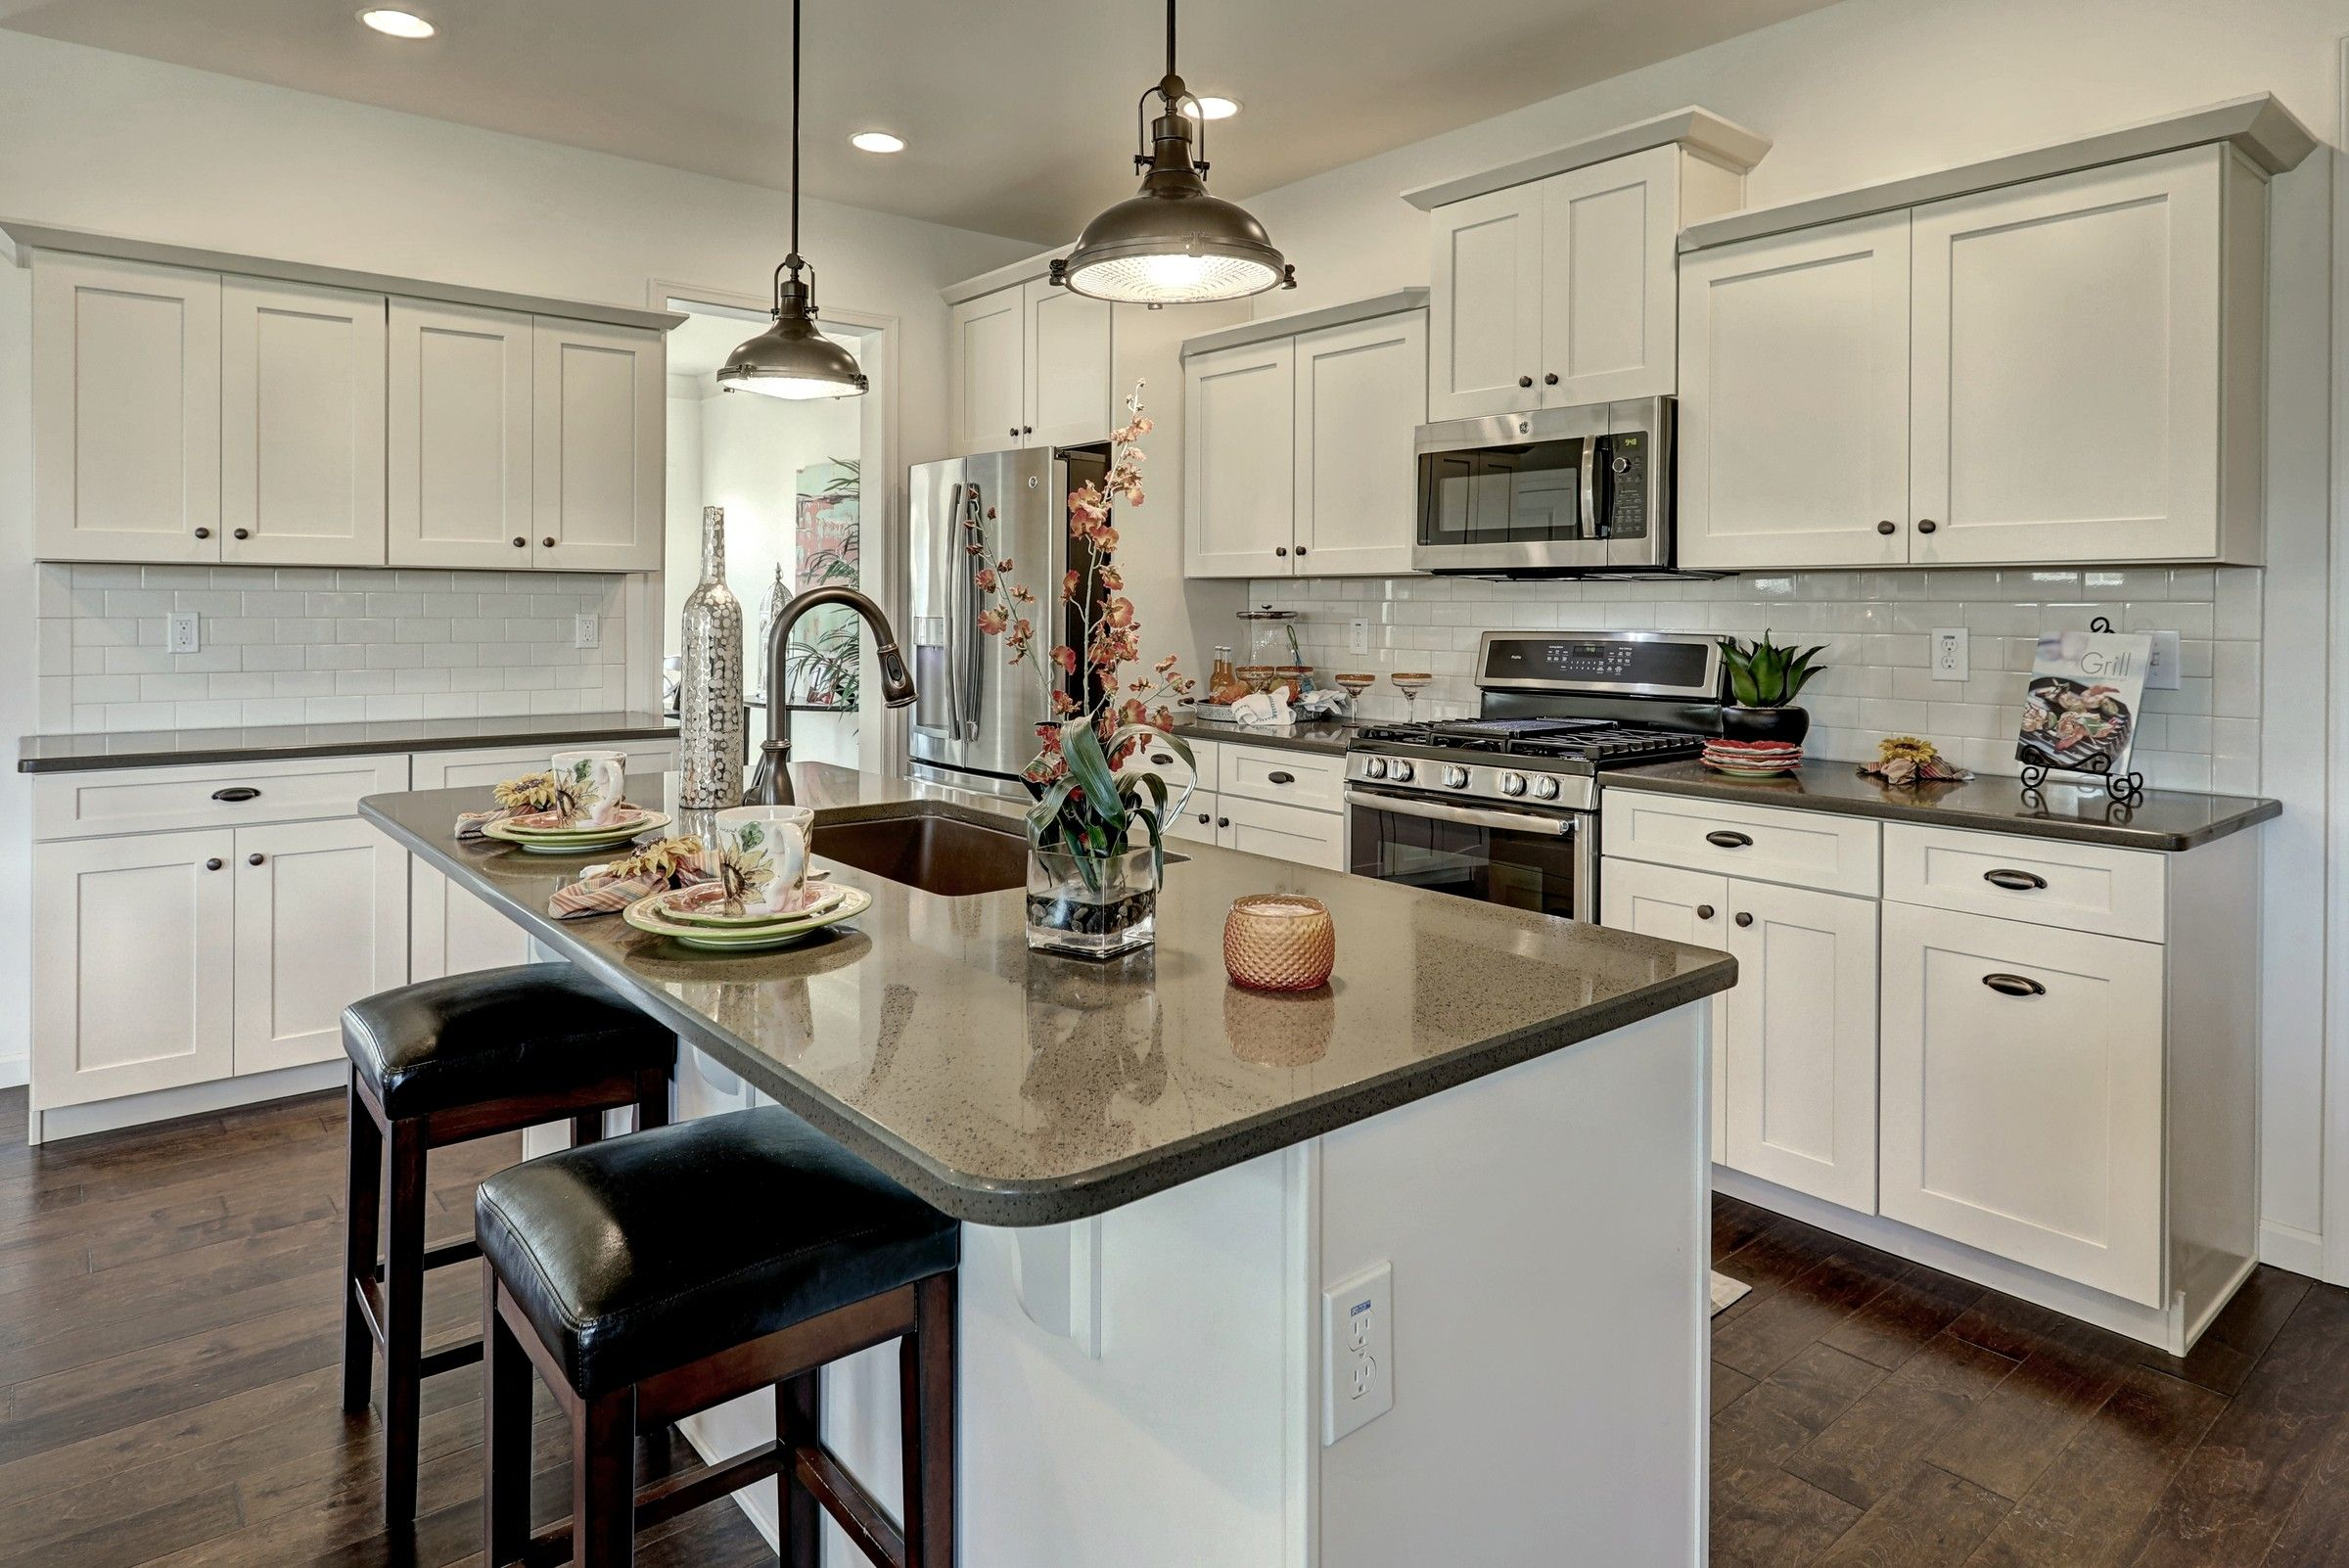 Kitchen featured in the Wyndham Heritage By Keystone Custom Homes in Philadelphia, PA